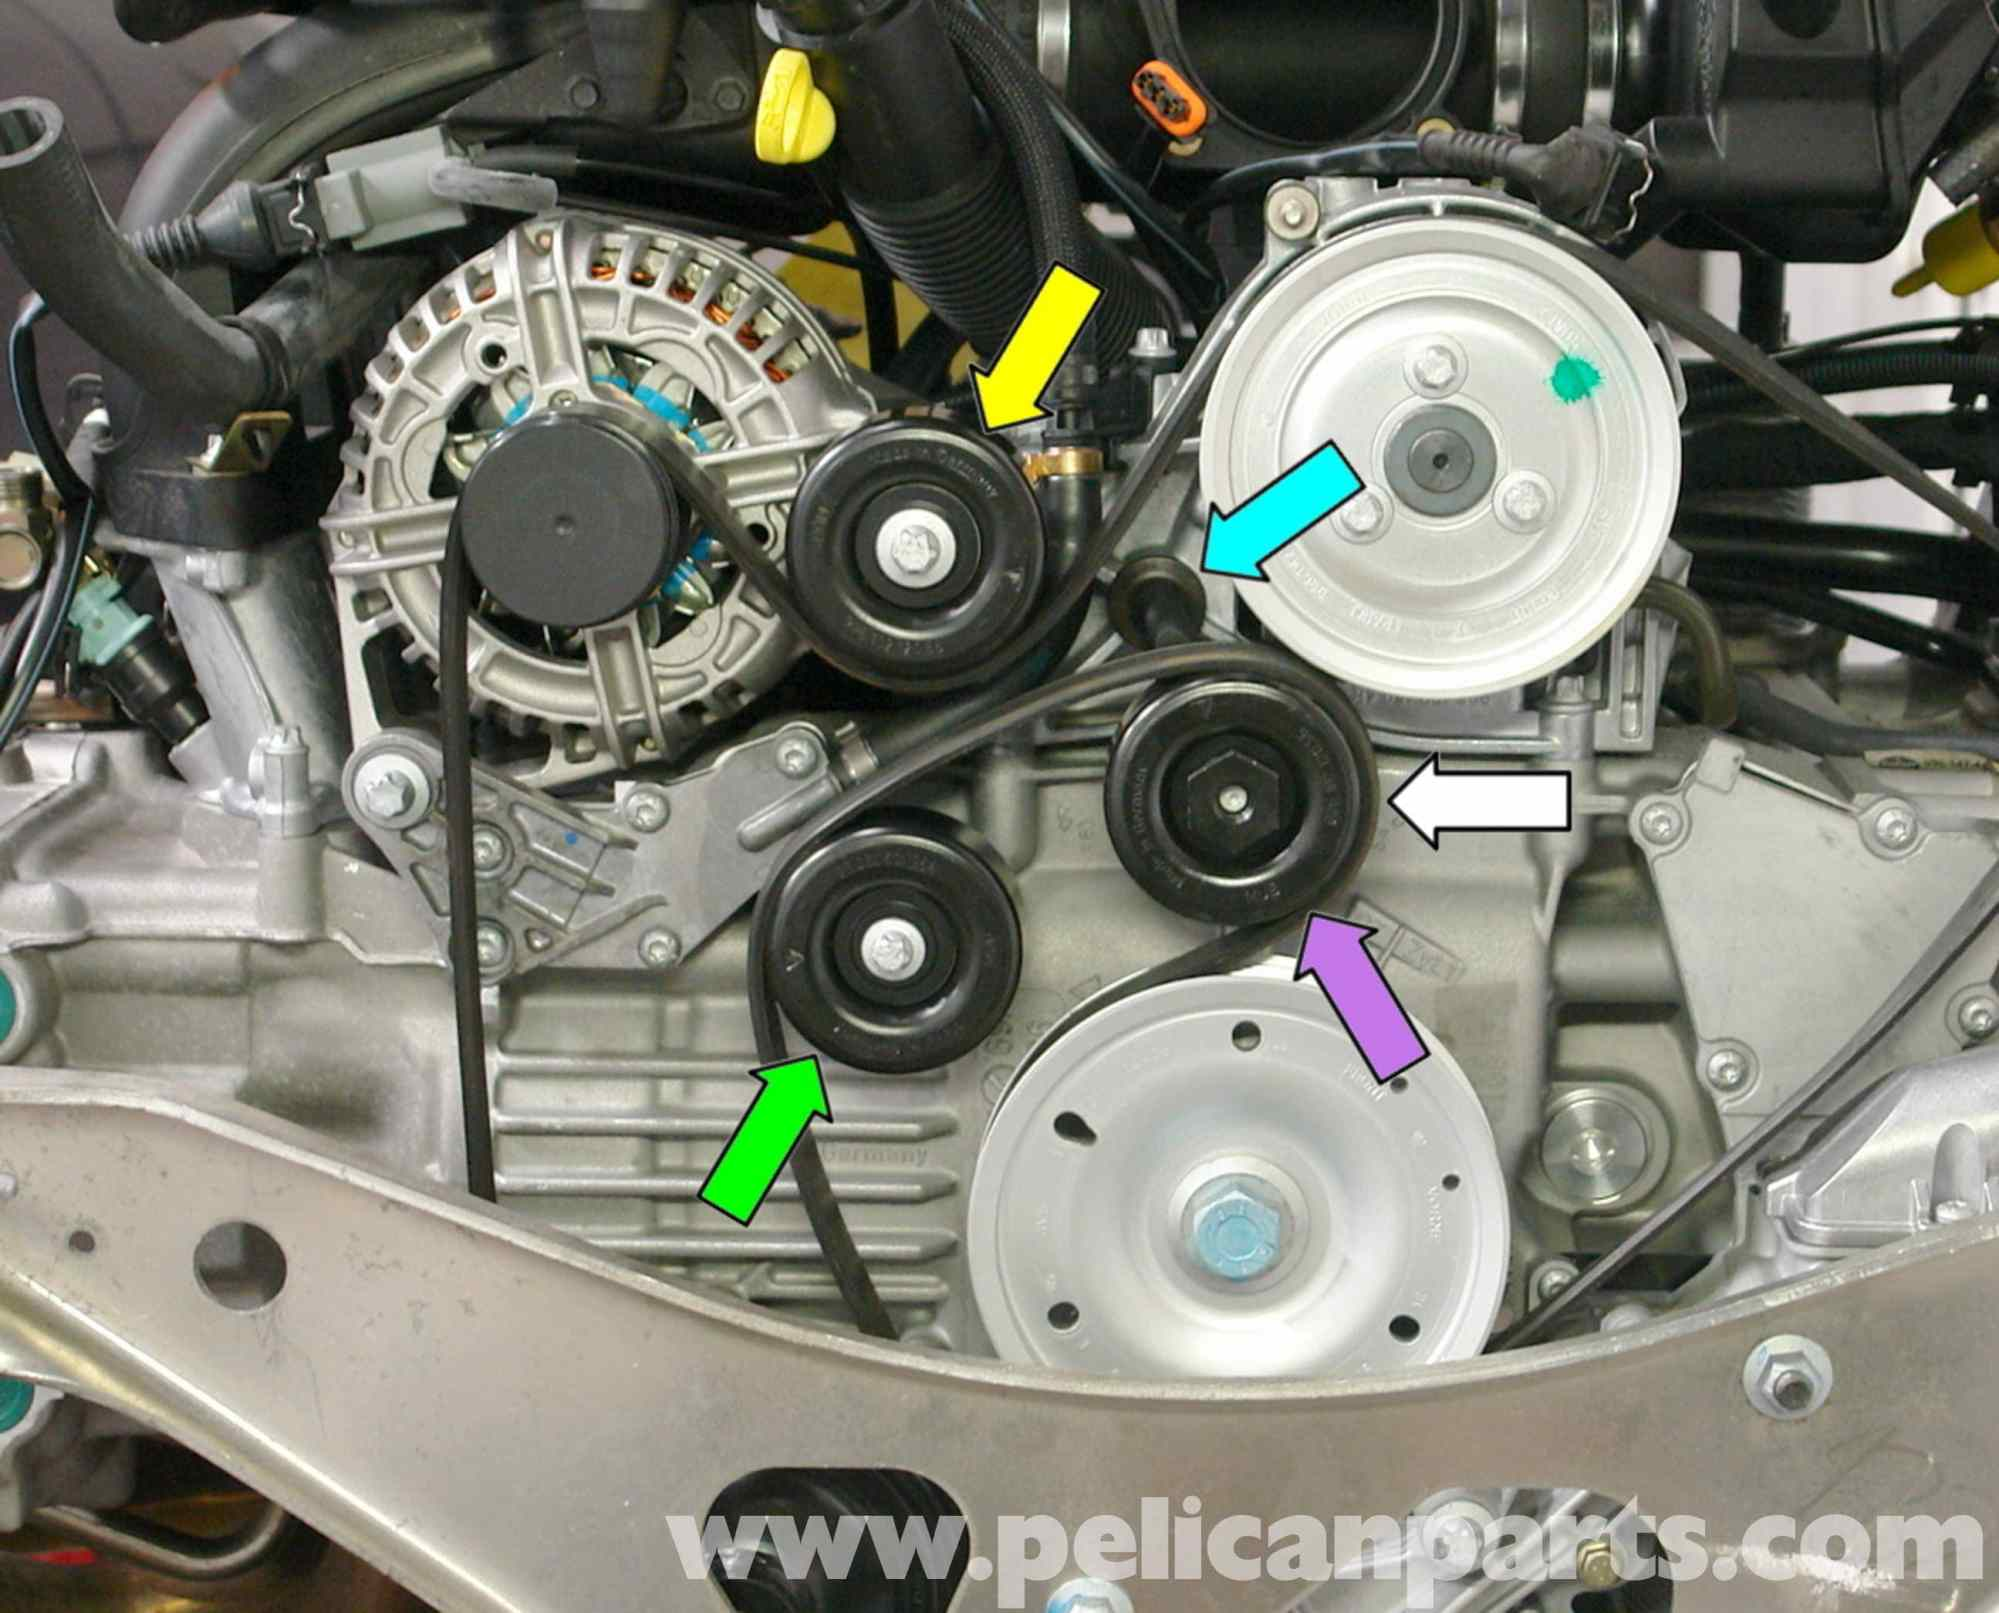 hight resolution of 2005 hyundai tucson engine diagram porsche boxster idler belt pulley replacement 986 987 3